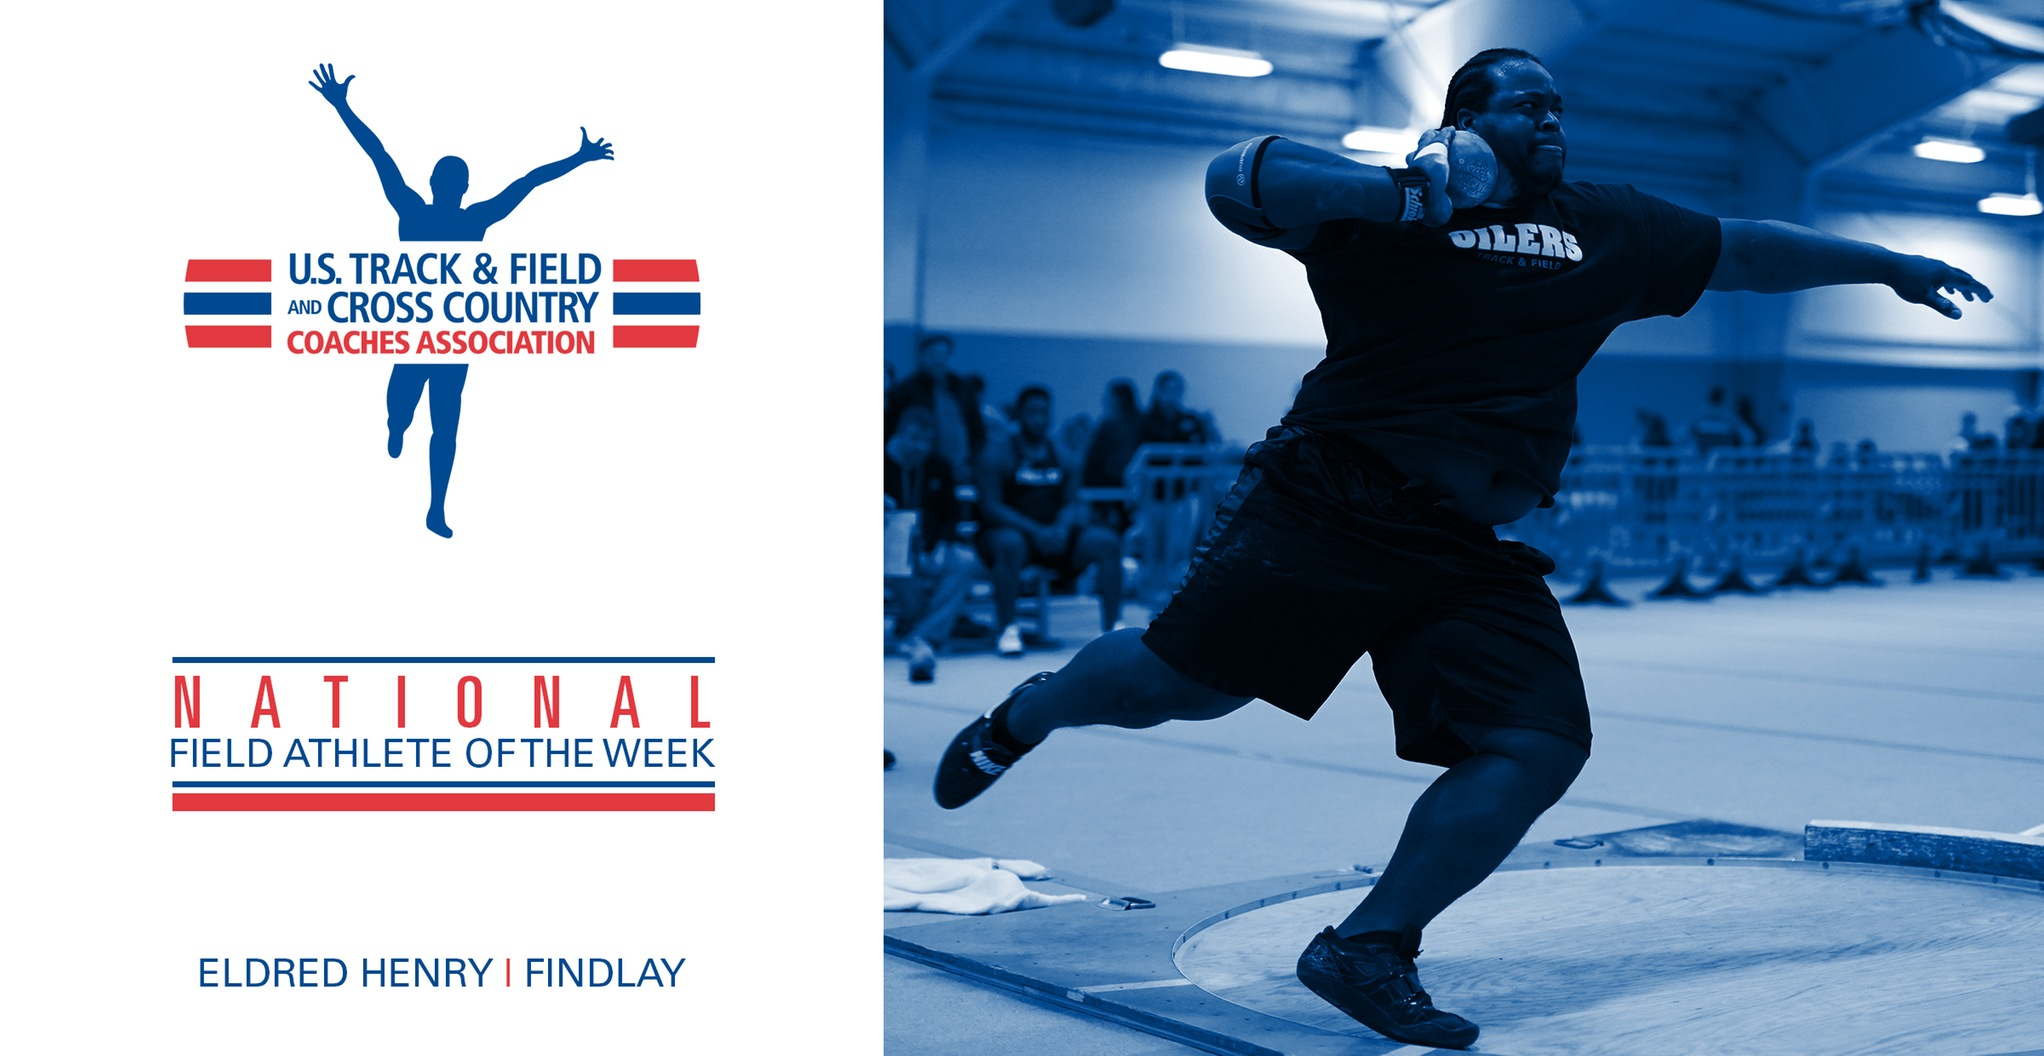 Henry Named National Field Athlete of the Week